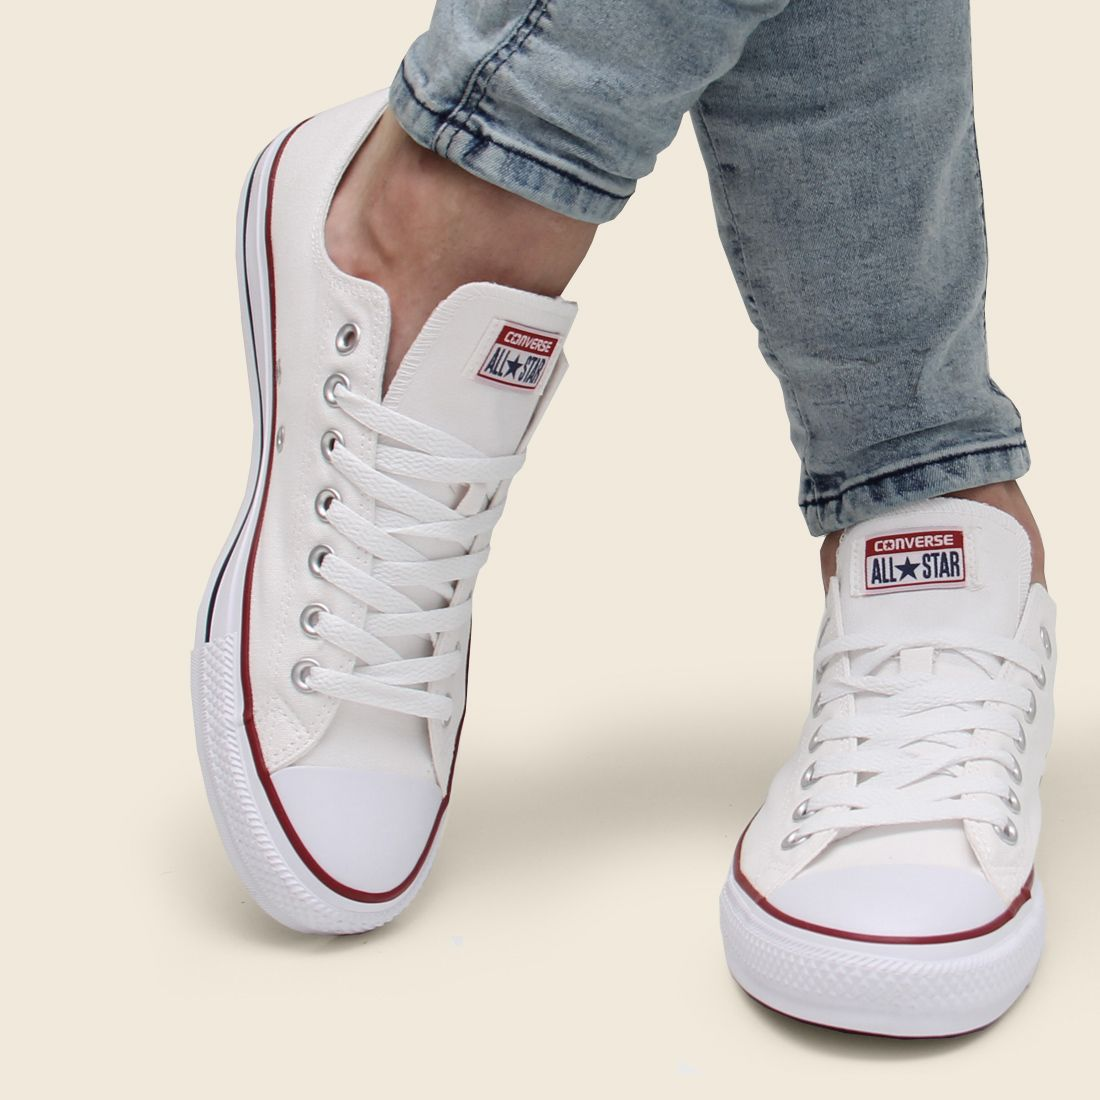 Converse chuck taylor all star in 2020 | Converse, Sneakers